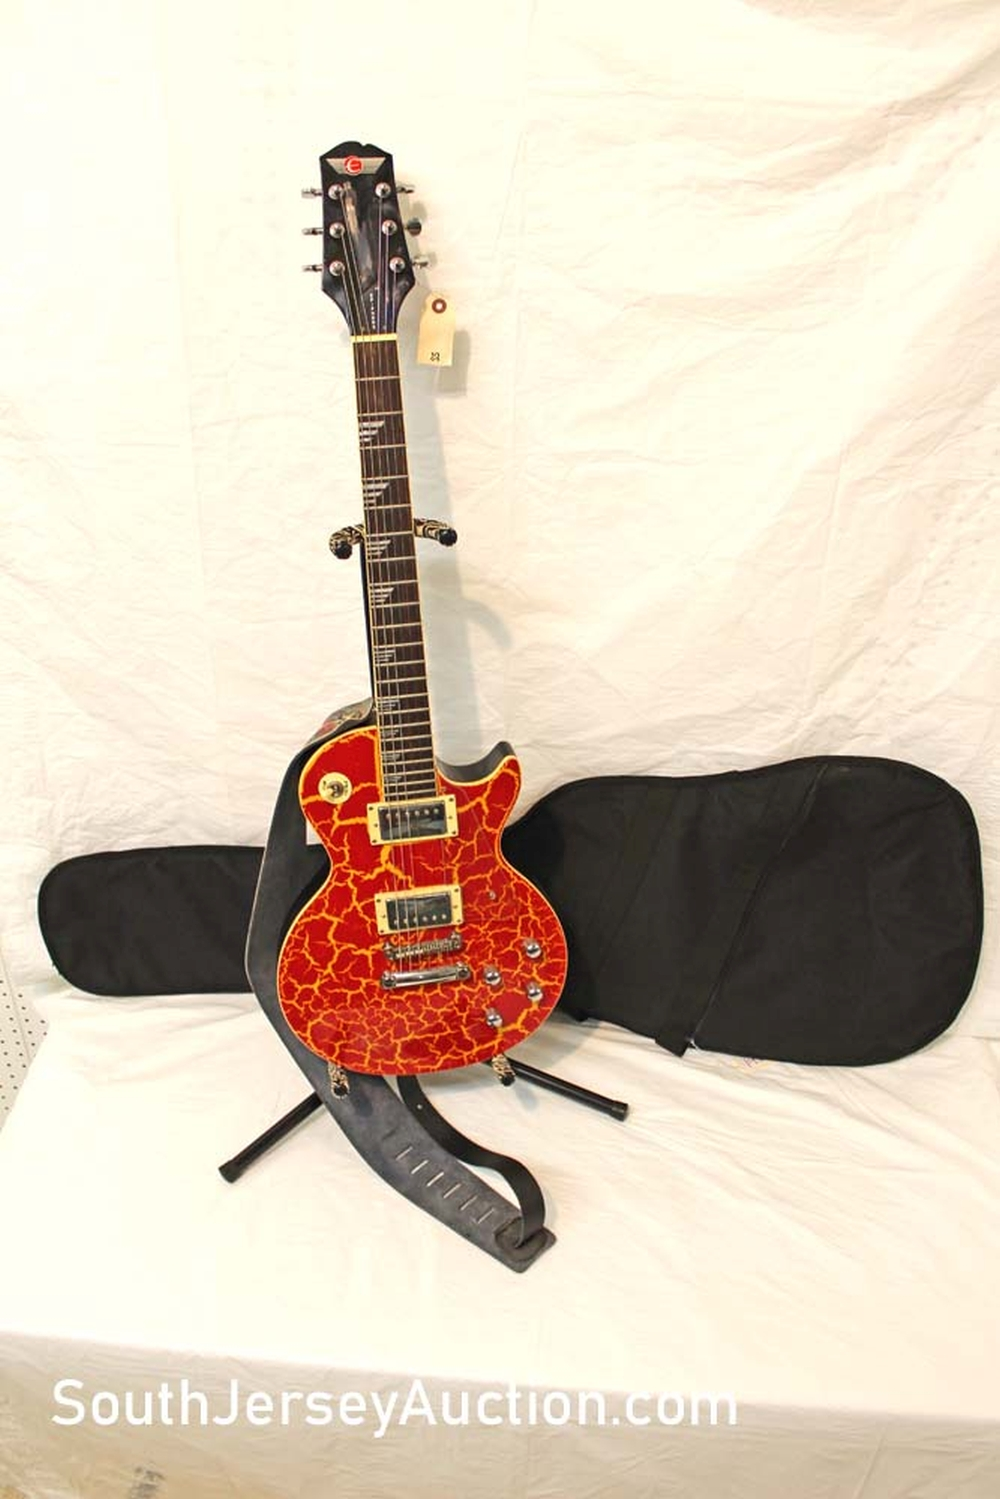 2001 Epiphone Les Paul Custom Shop Nuclear Extreme guitar in the crackle finish, with strap (nude woman), Korean made, s/n U01050299, with Kaces soft gig bag, very good condition